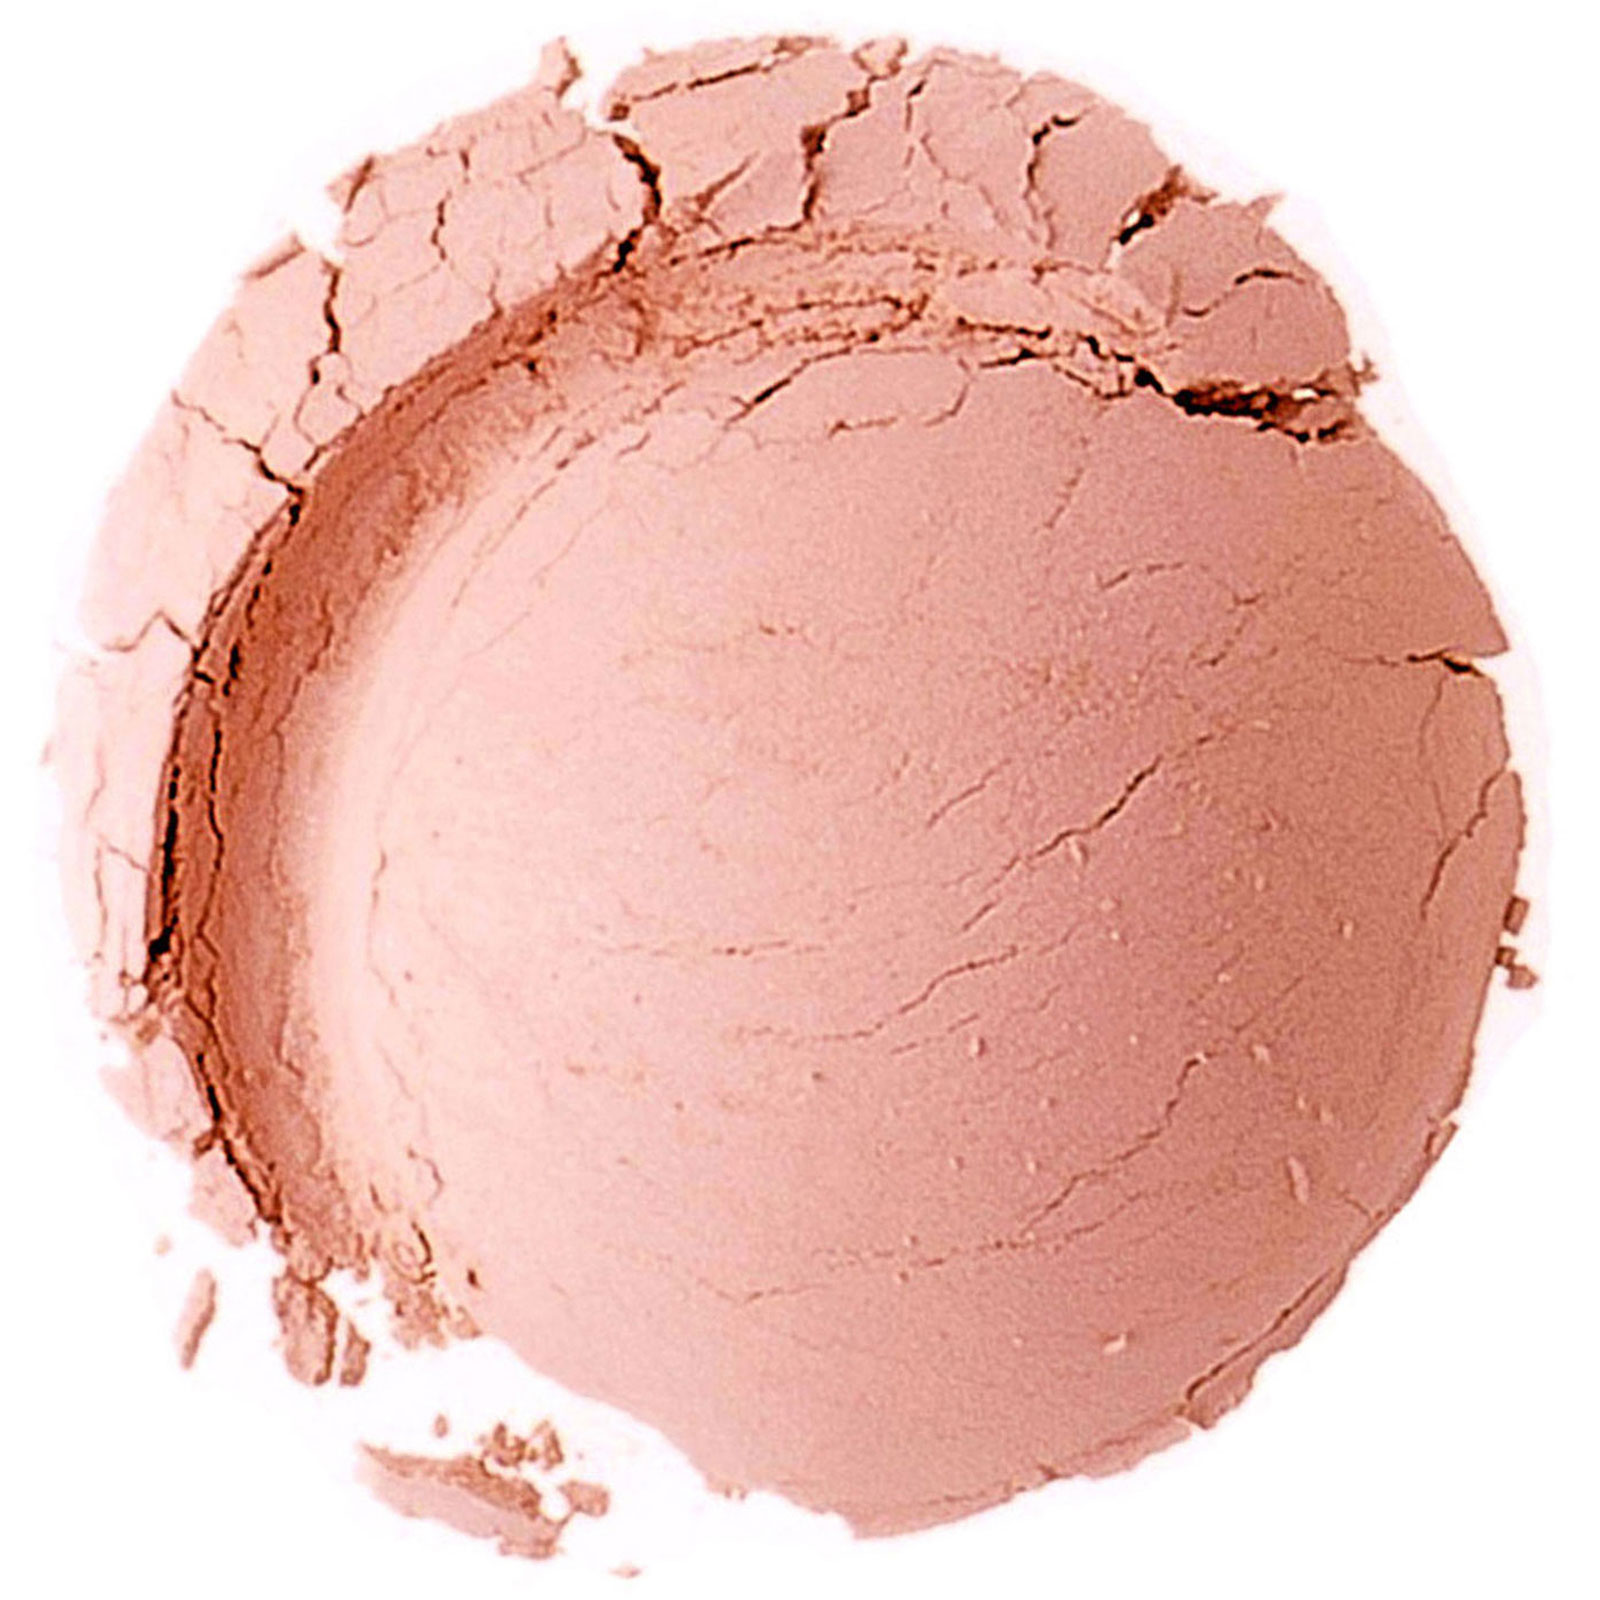 Everyday minerals cheek powder